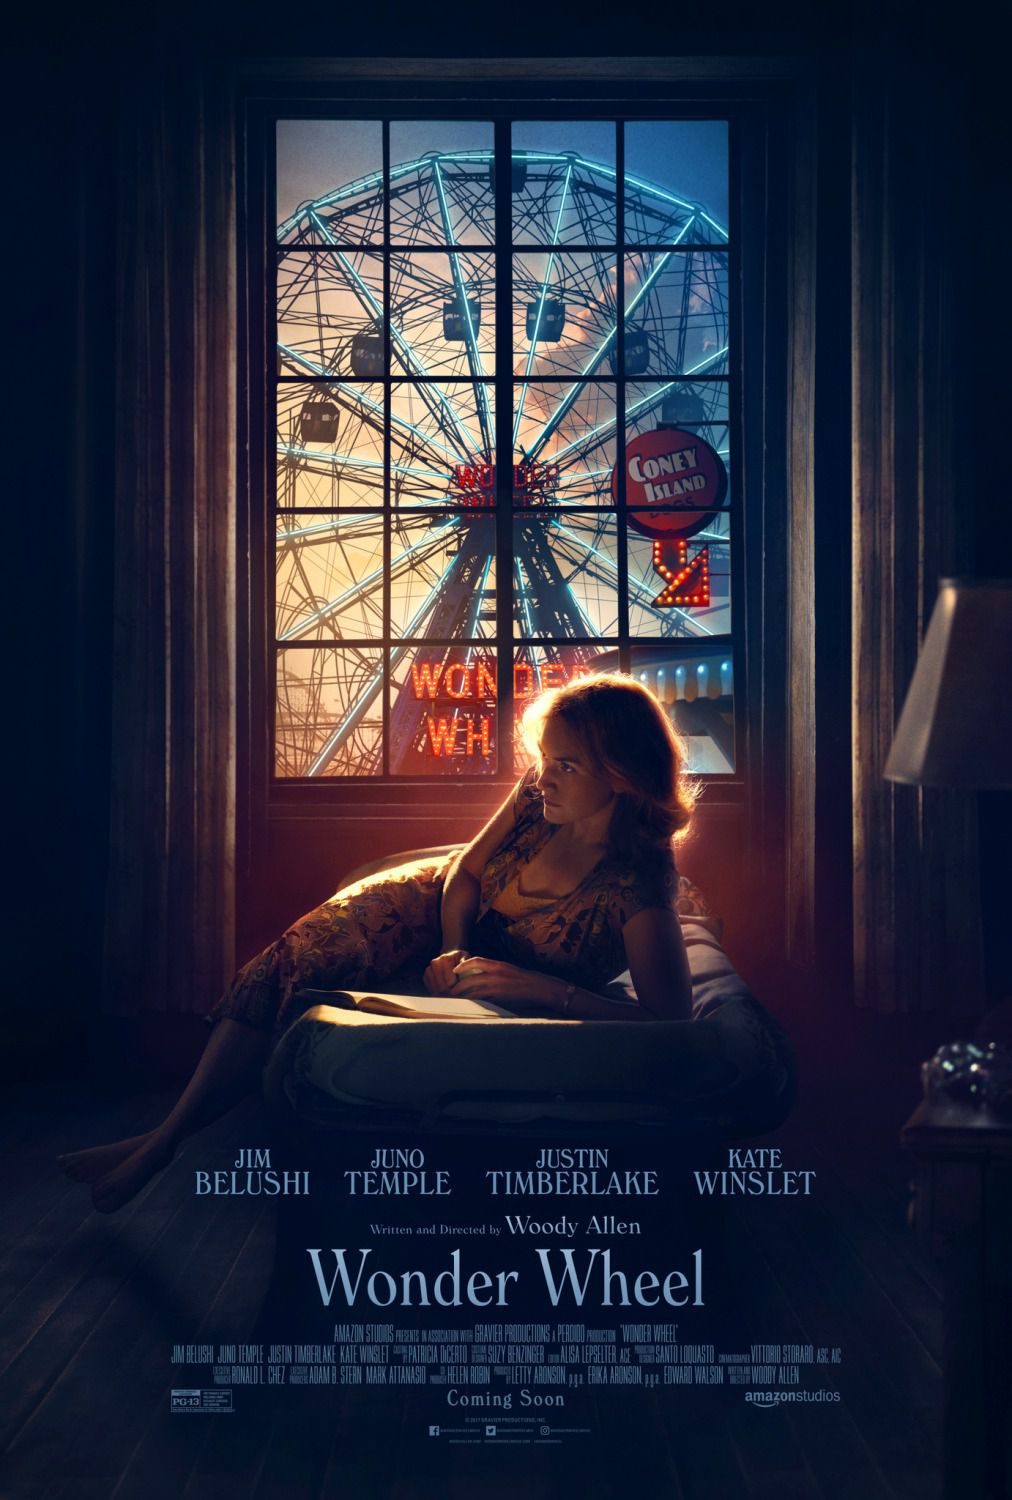 Wonder Wheel - Woody Allen - Kate Winslet - Juno Temple - Justin Timberlake - James Belushi - film poster